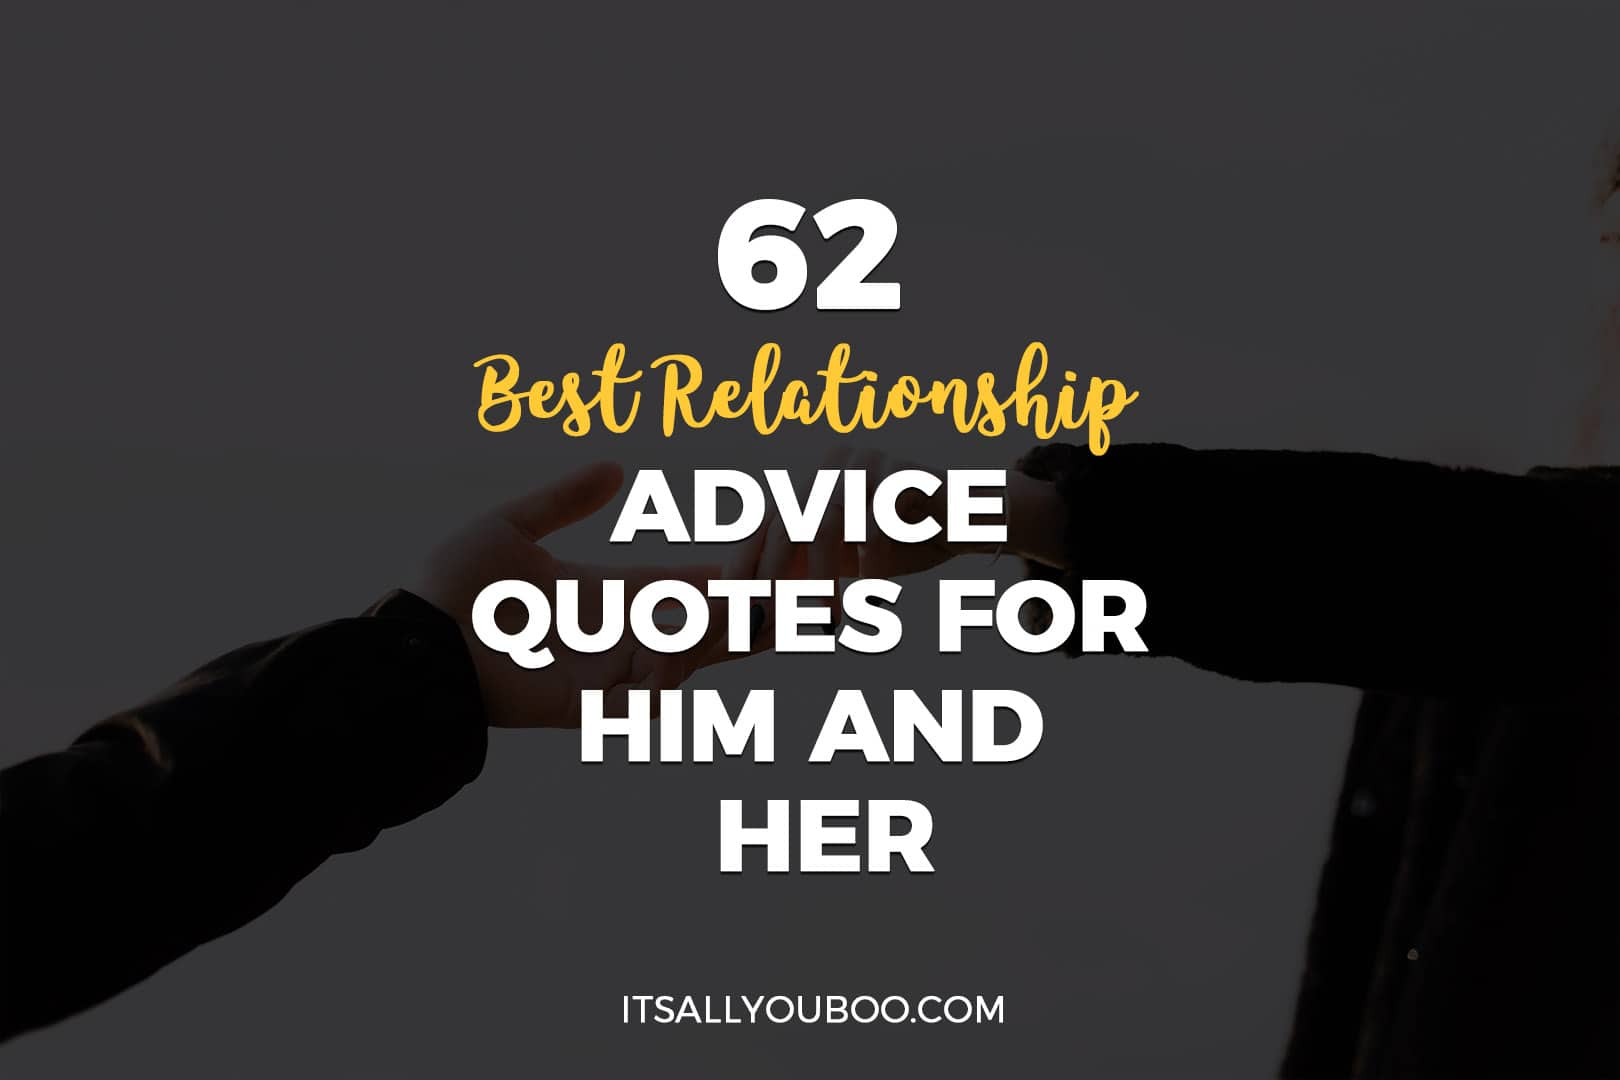 62 Best Relationship Advice Quotes for Him and Her